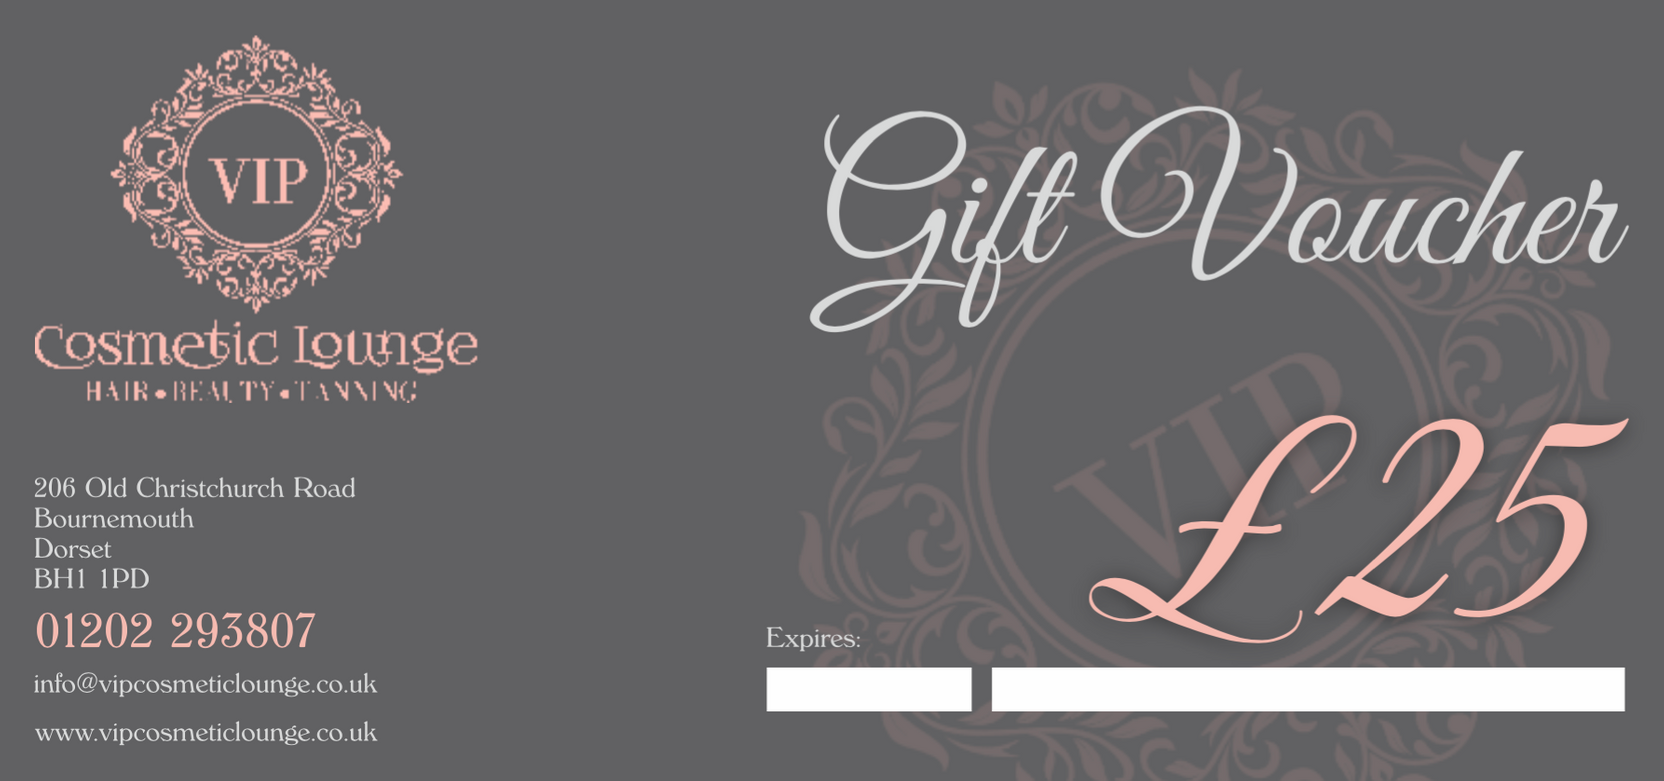 £25 cosmetic beauty treatment gift voucher